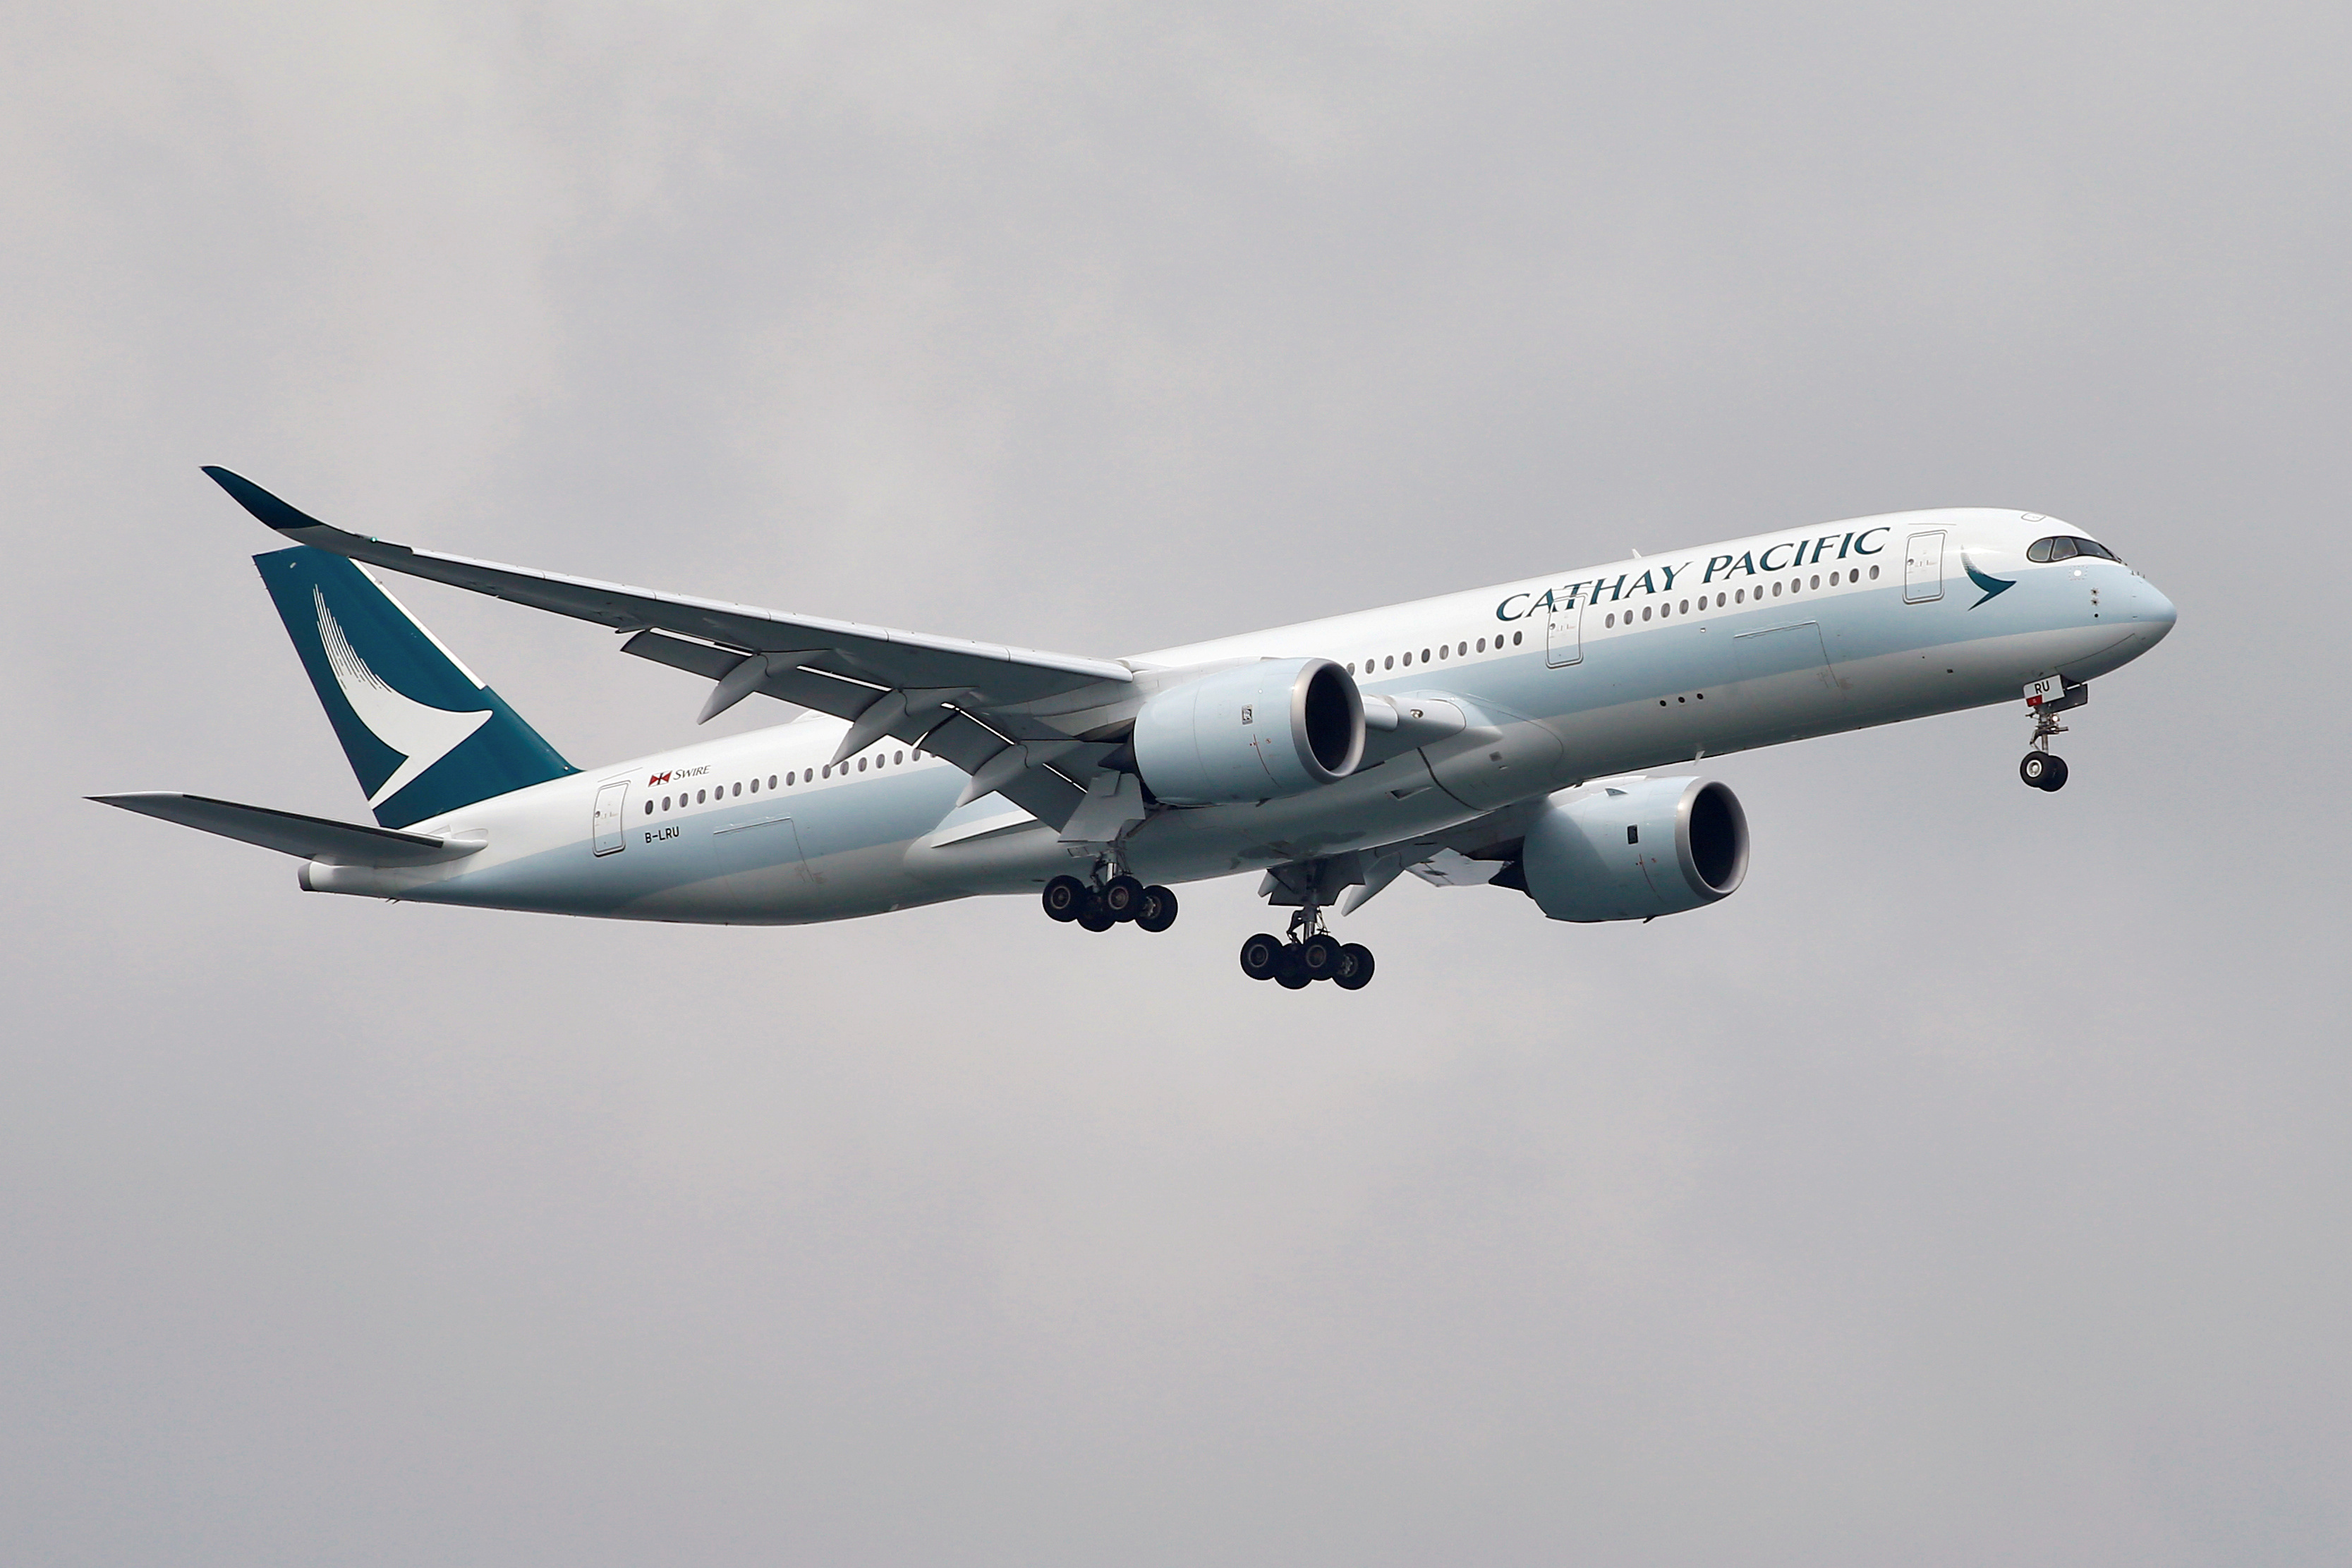 Already reeling from the Hong Kong protests crisis, Cathay Pacific has suffered another, and perhaps bigger, blow due to the China coronavirus. Photo: Reuters